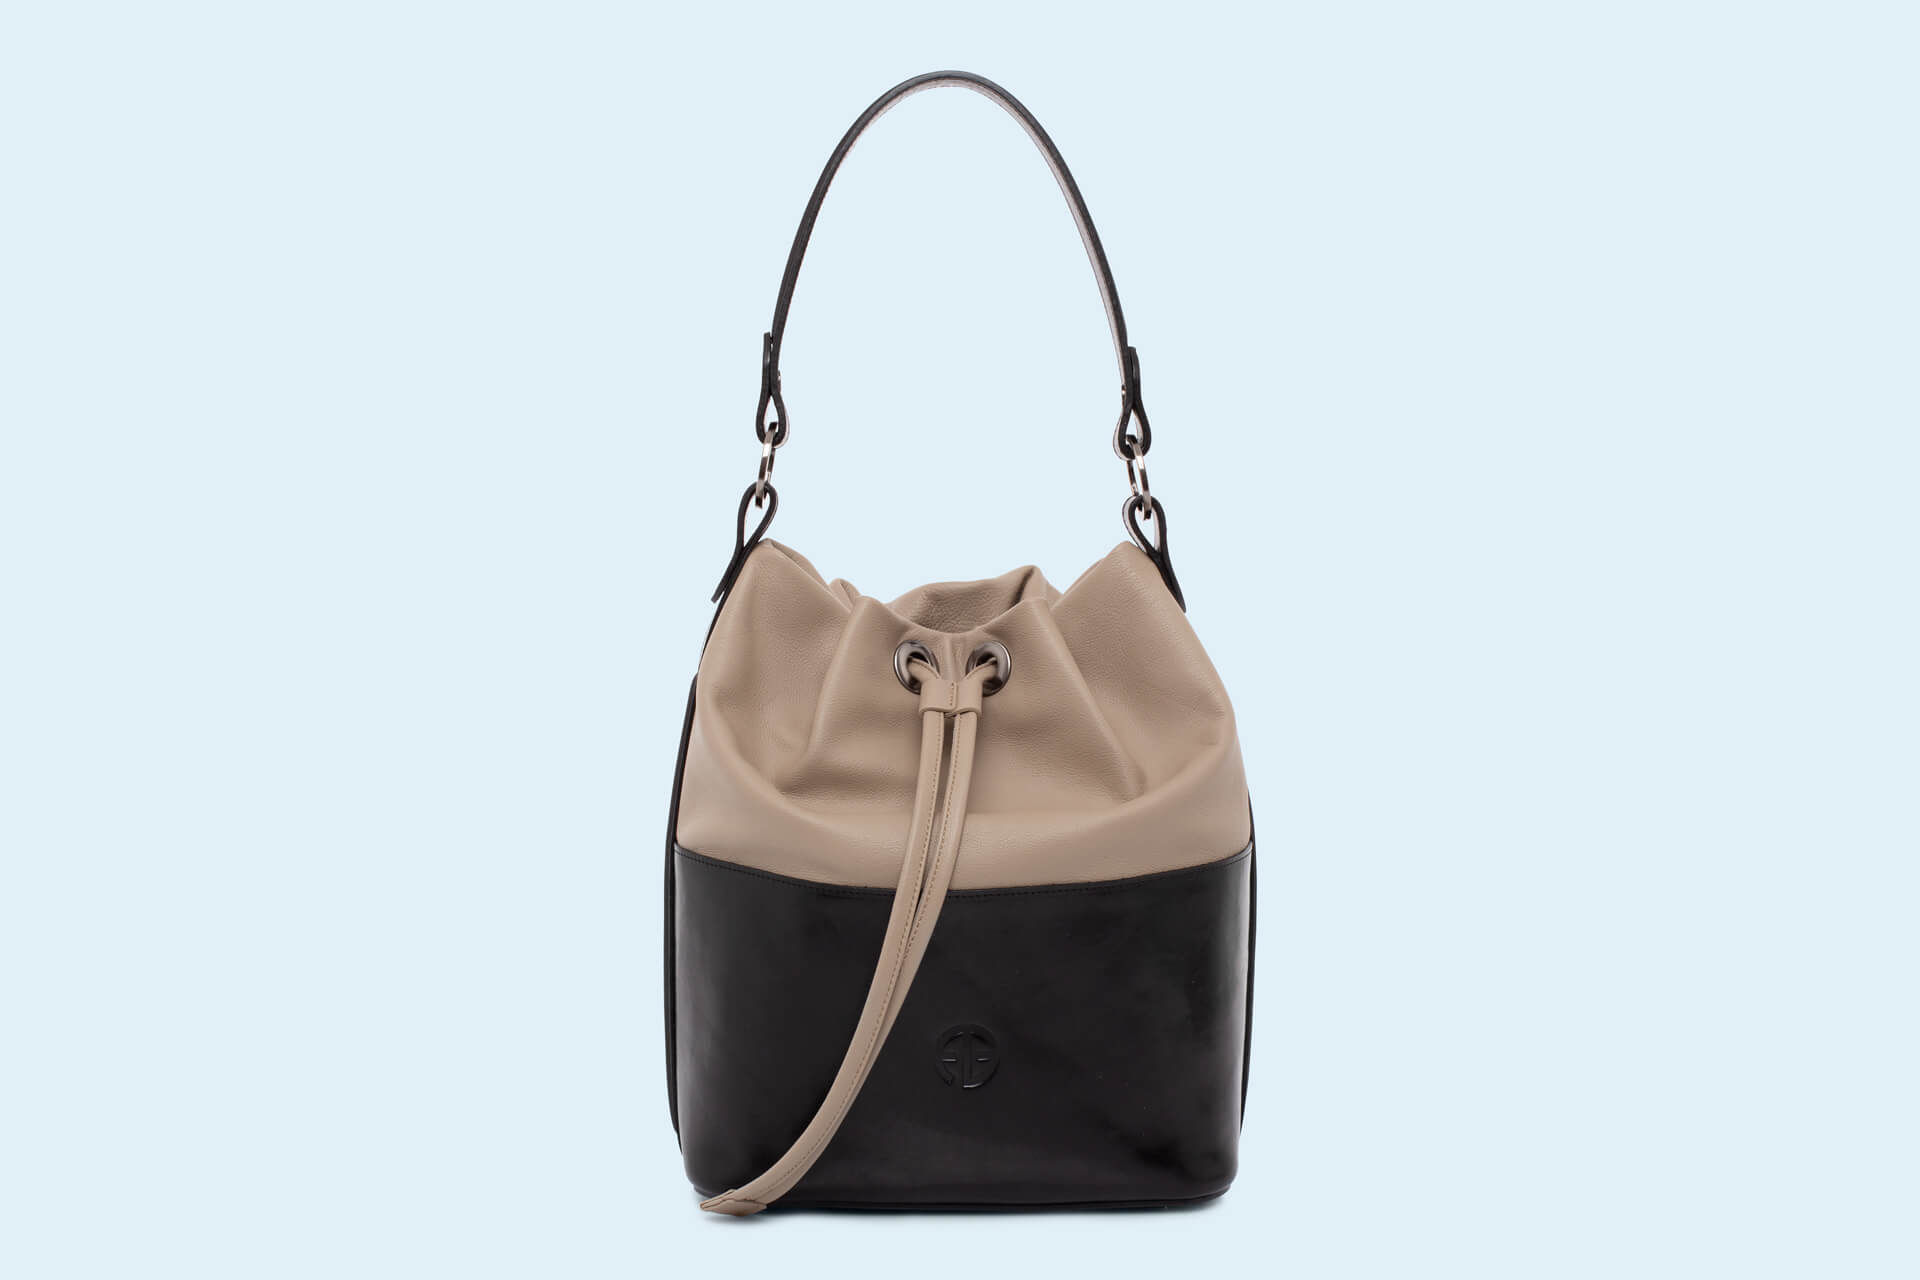 adam_baron_bucket_bag_earthy_1.jpg